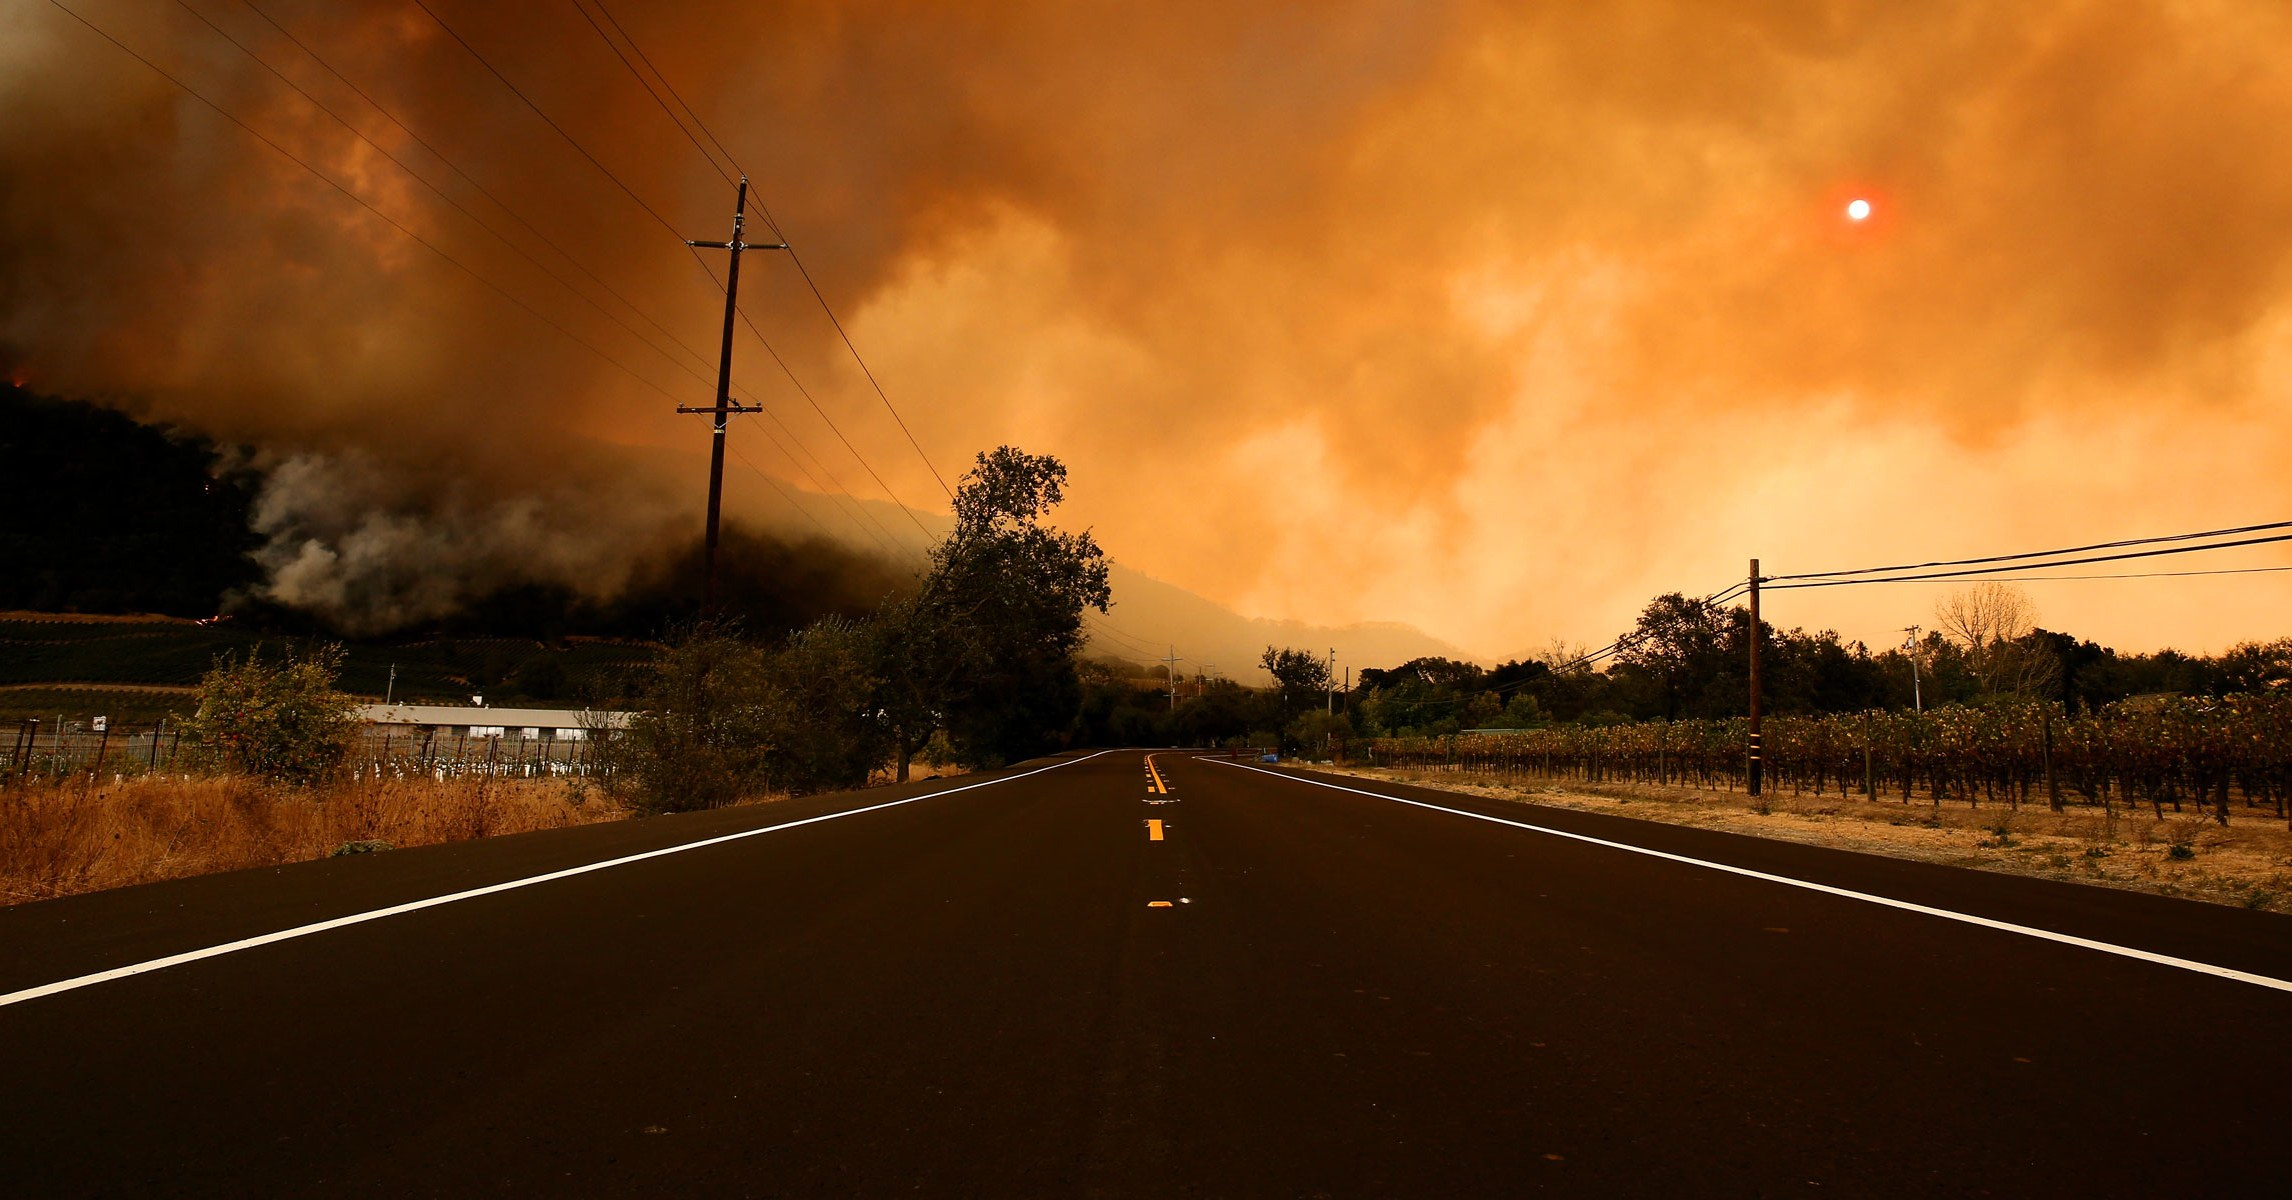 The Fires in Napa, Sonoma, and Santa Rosa Are a Perfectly Normal Apocalypse